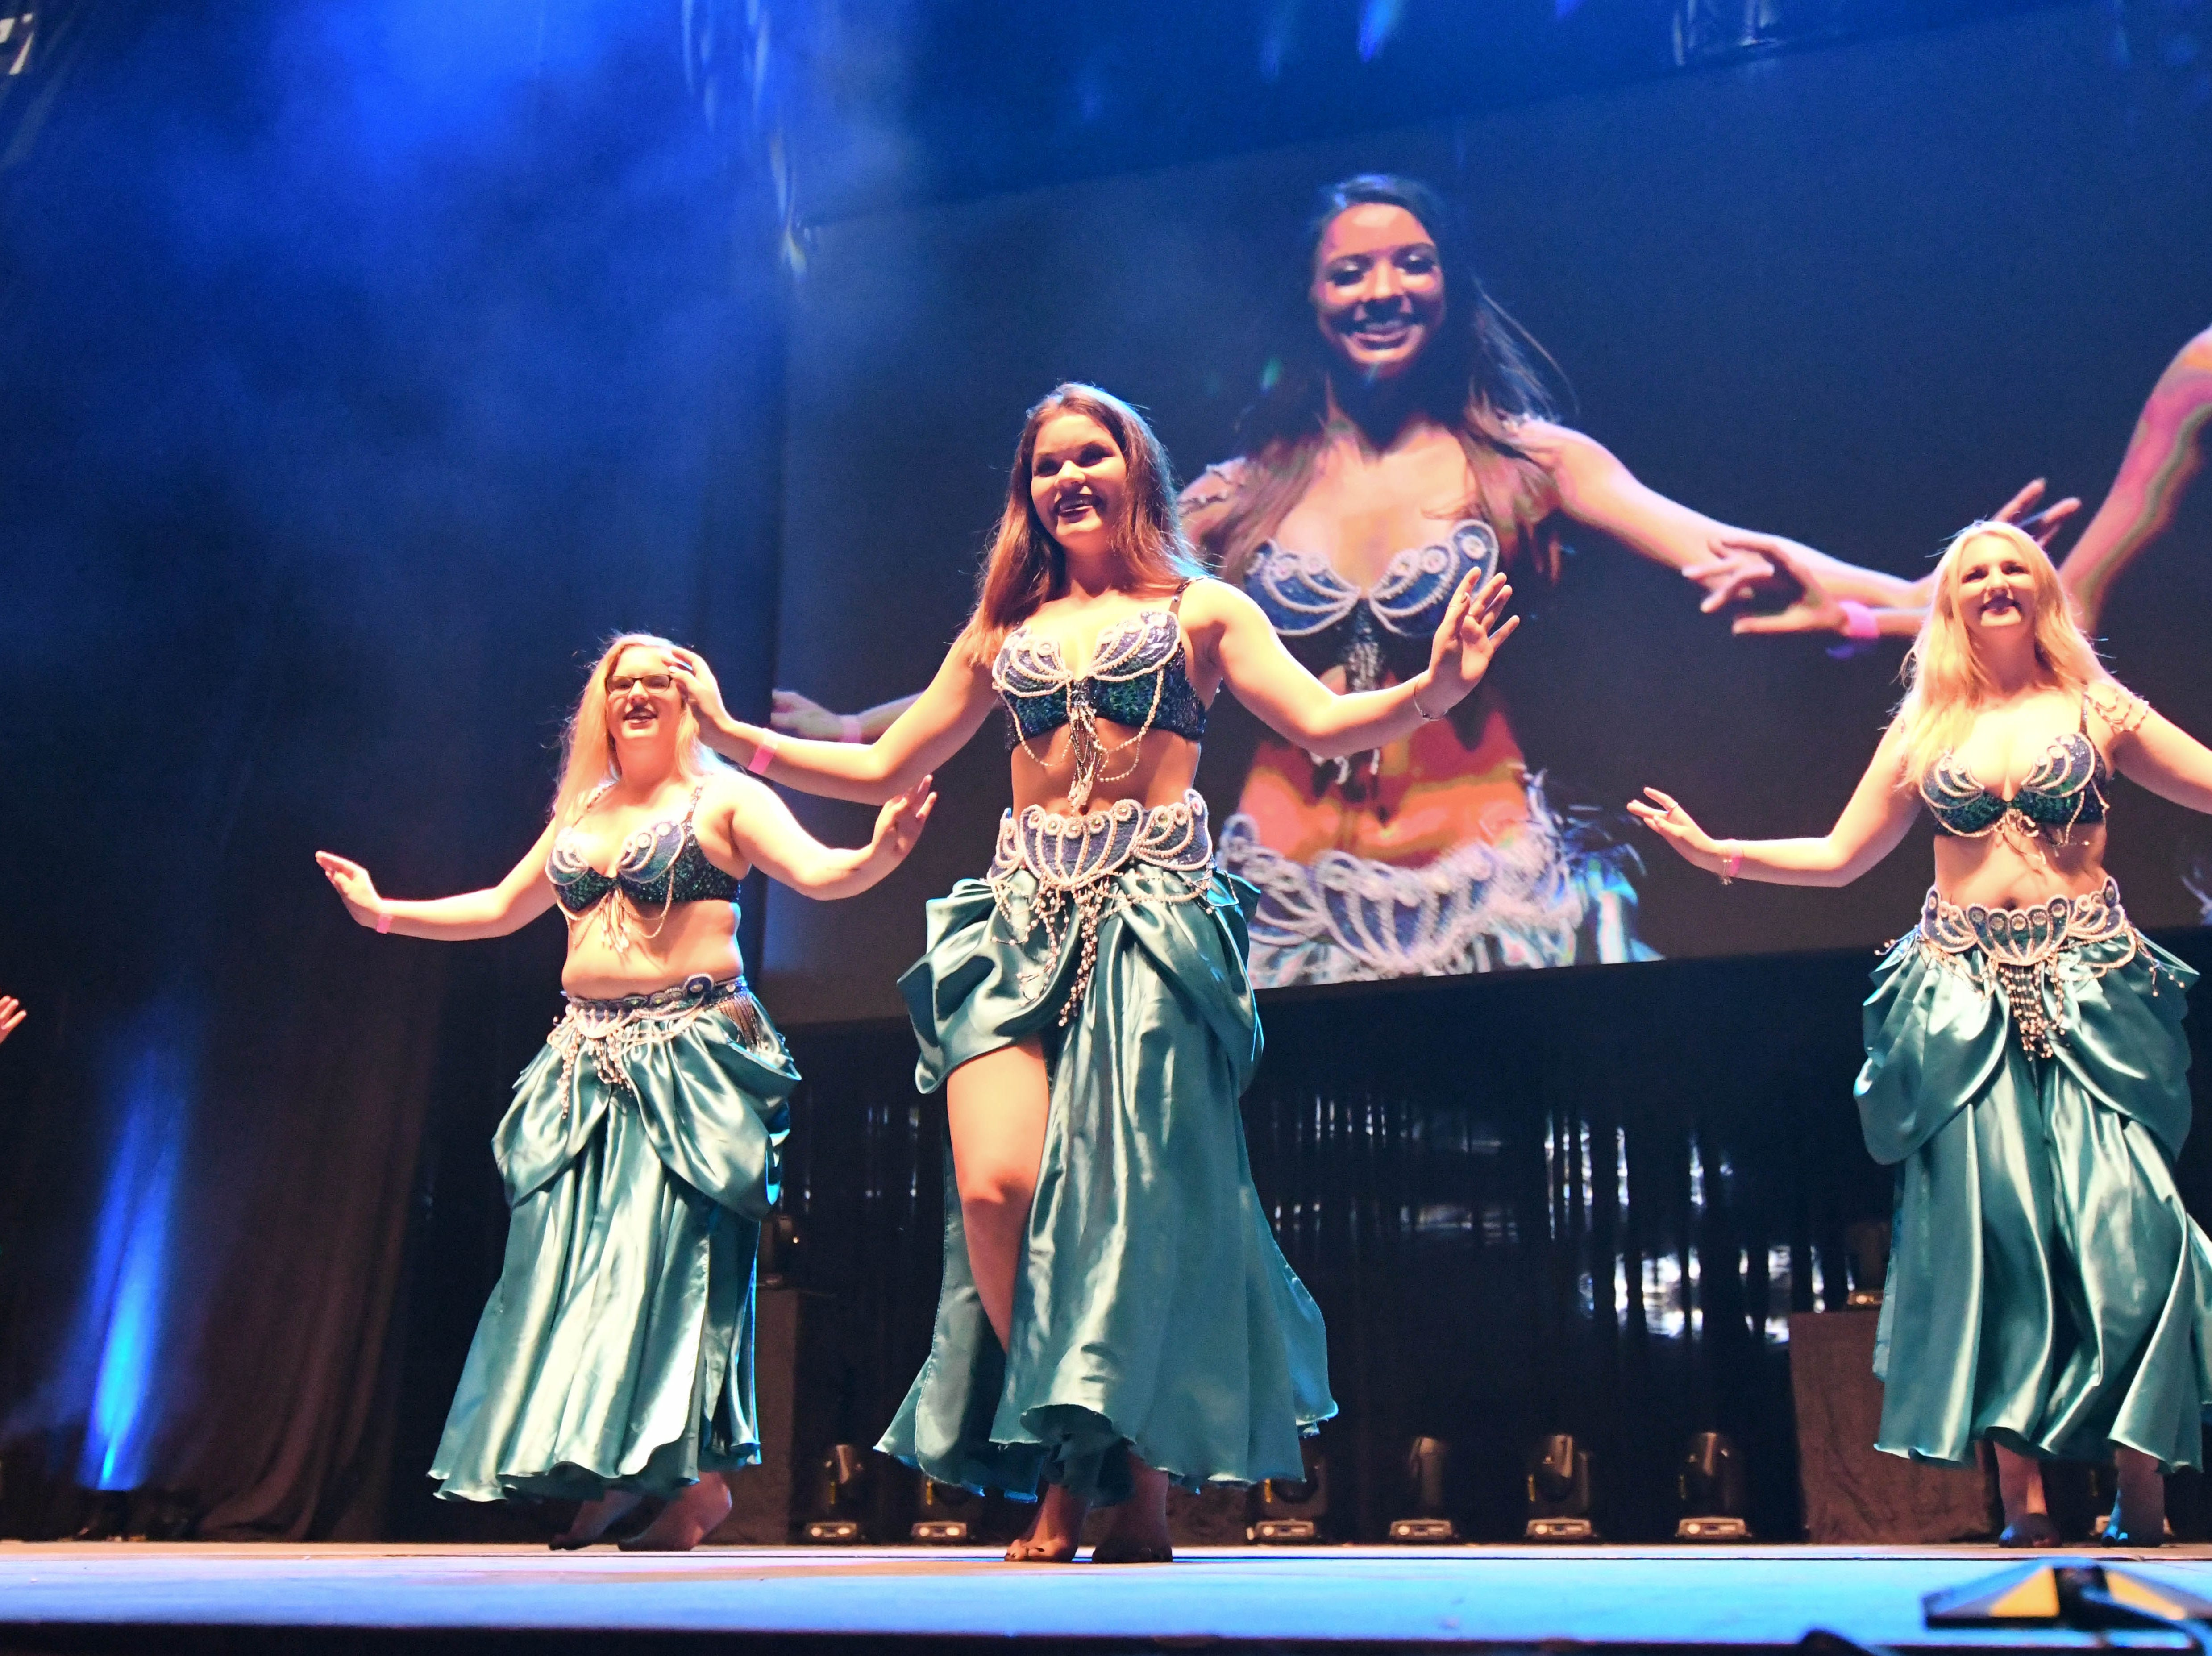 The Belly Dancers performing at PowWow at the Donald L. Tucker Civic Center on October 19, 2018